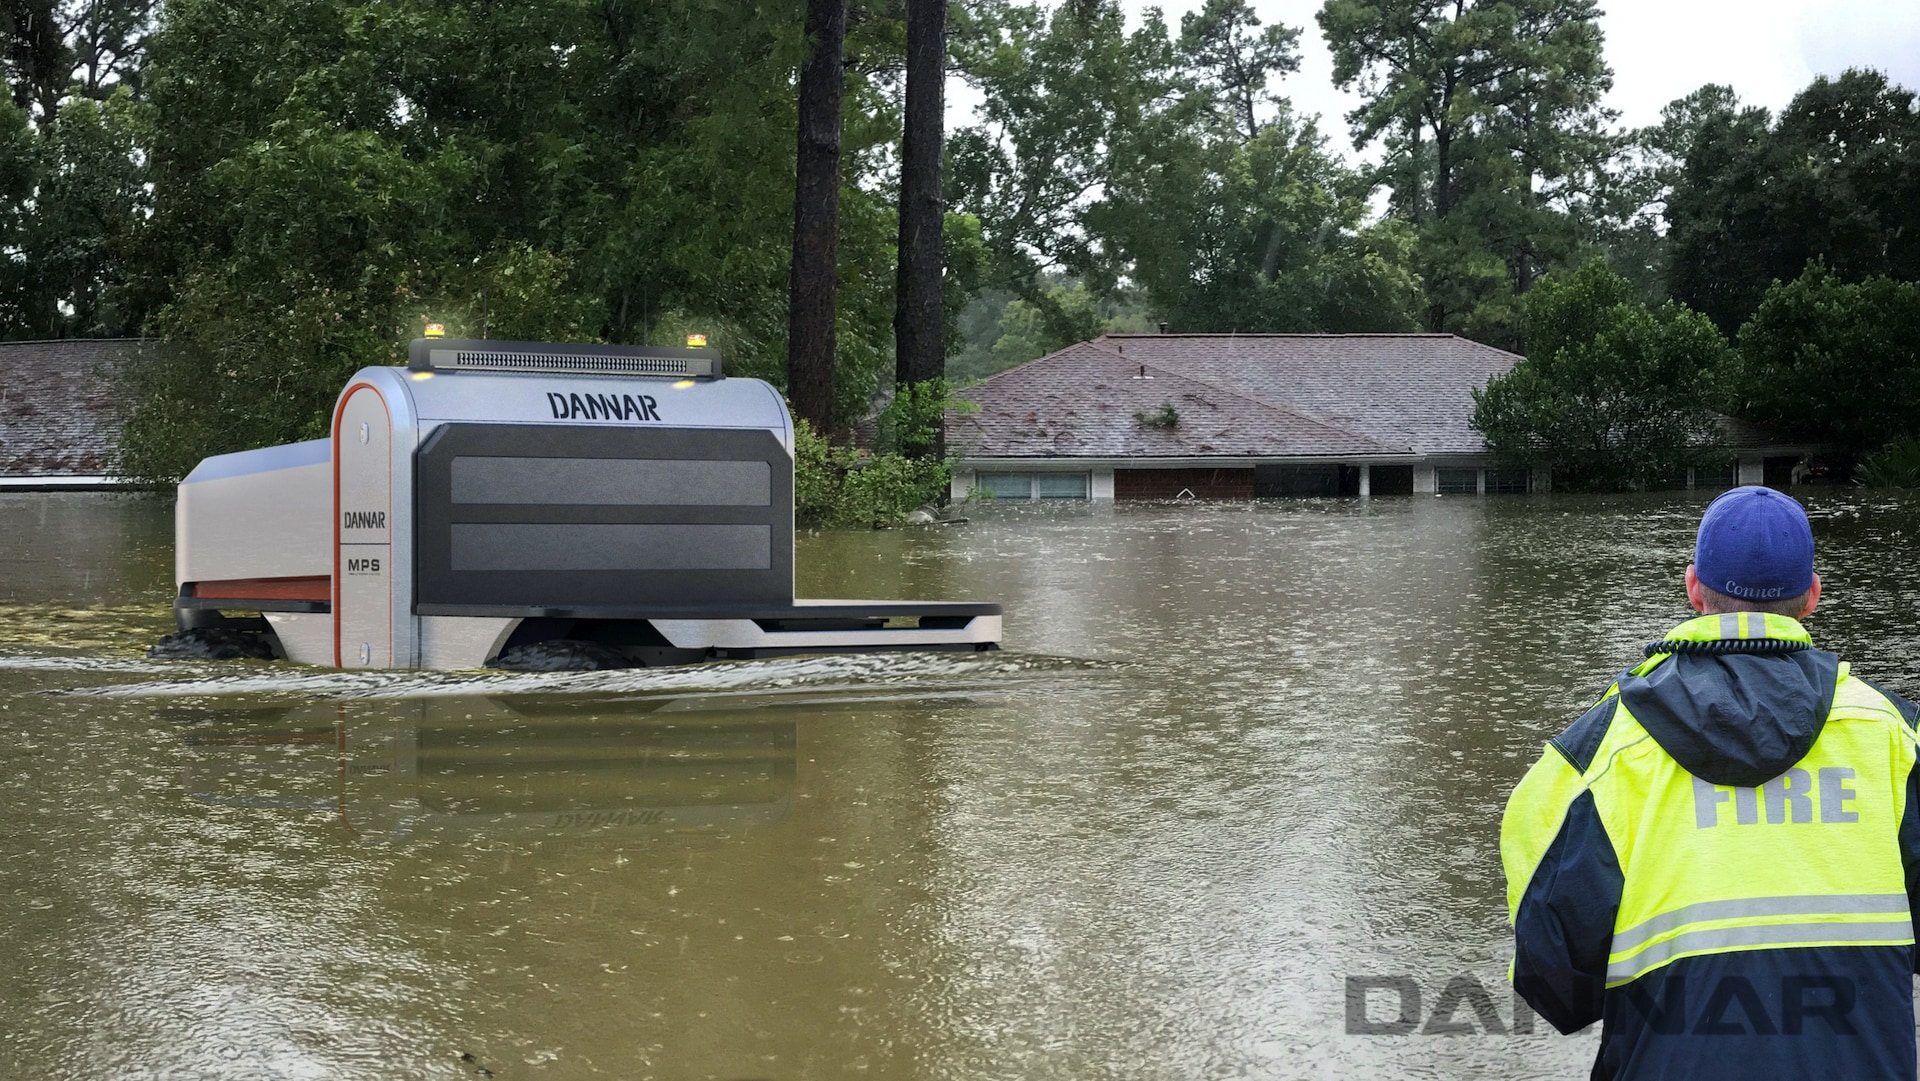 DANNAR 400 driving through flood water helping with disaster response